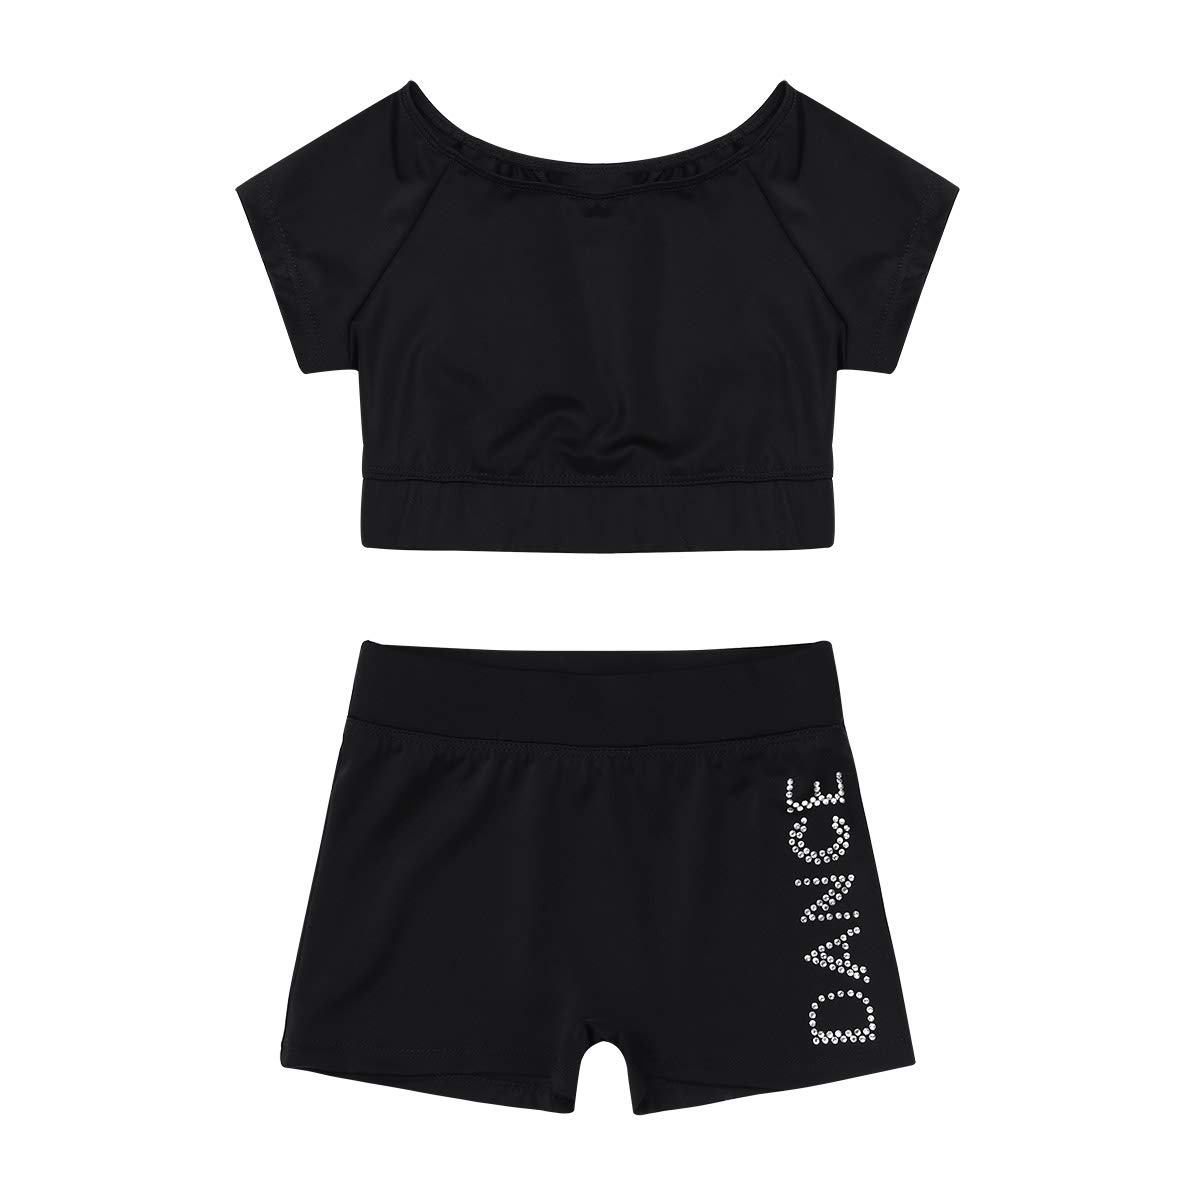 Short Sleeves Black Agoky Kids Girls' Top and Booty Shorts Ballet Dance Gymnastics Sports Leotard or Swimwear Swimming Costumes